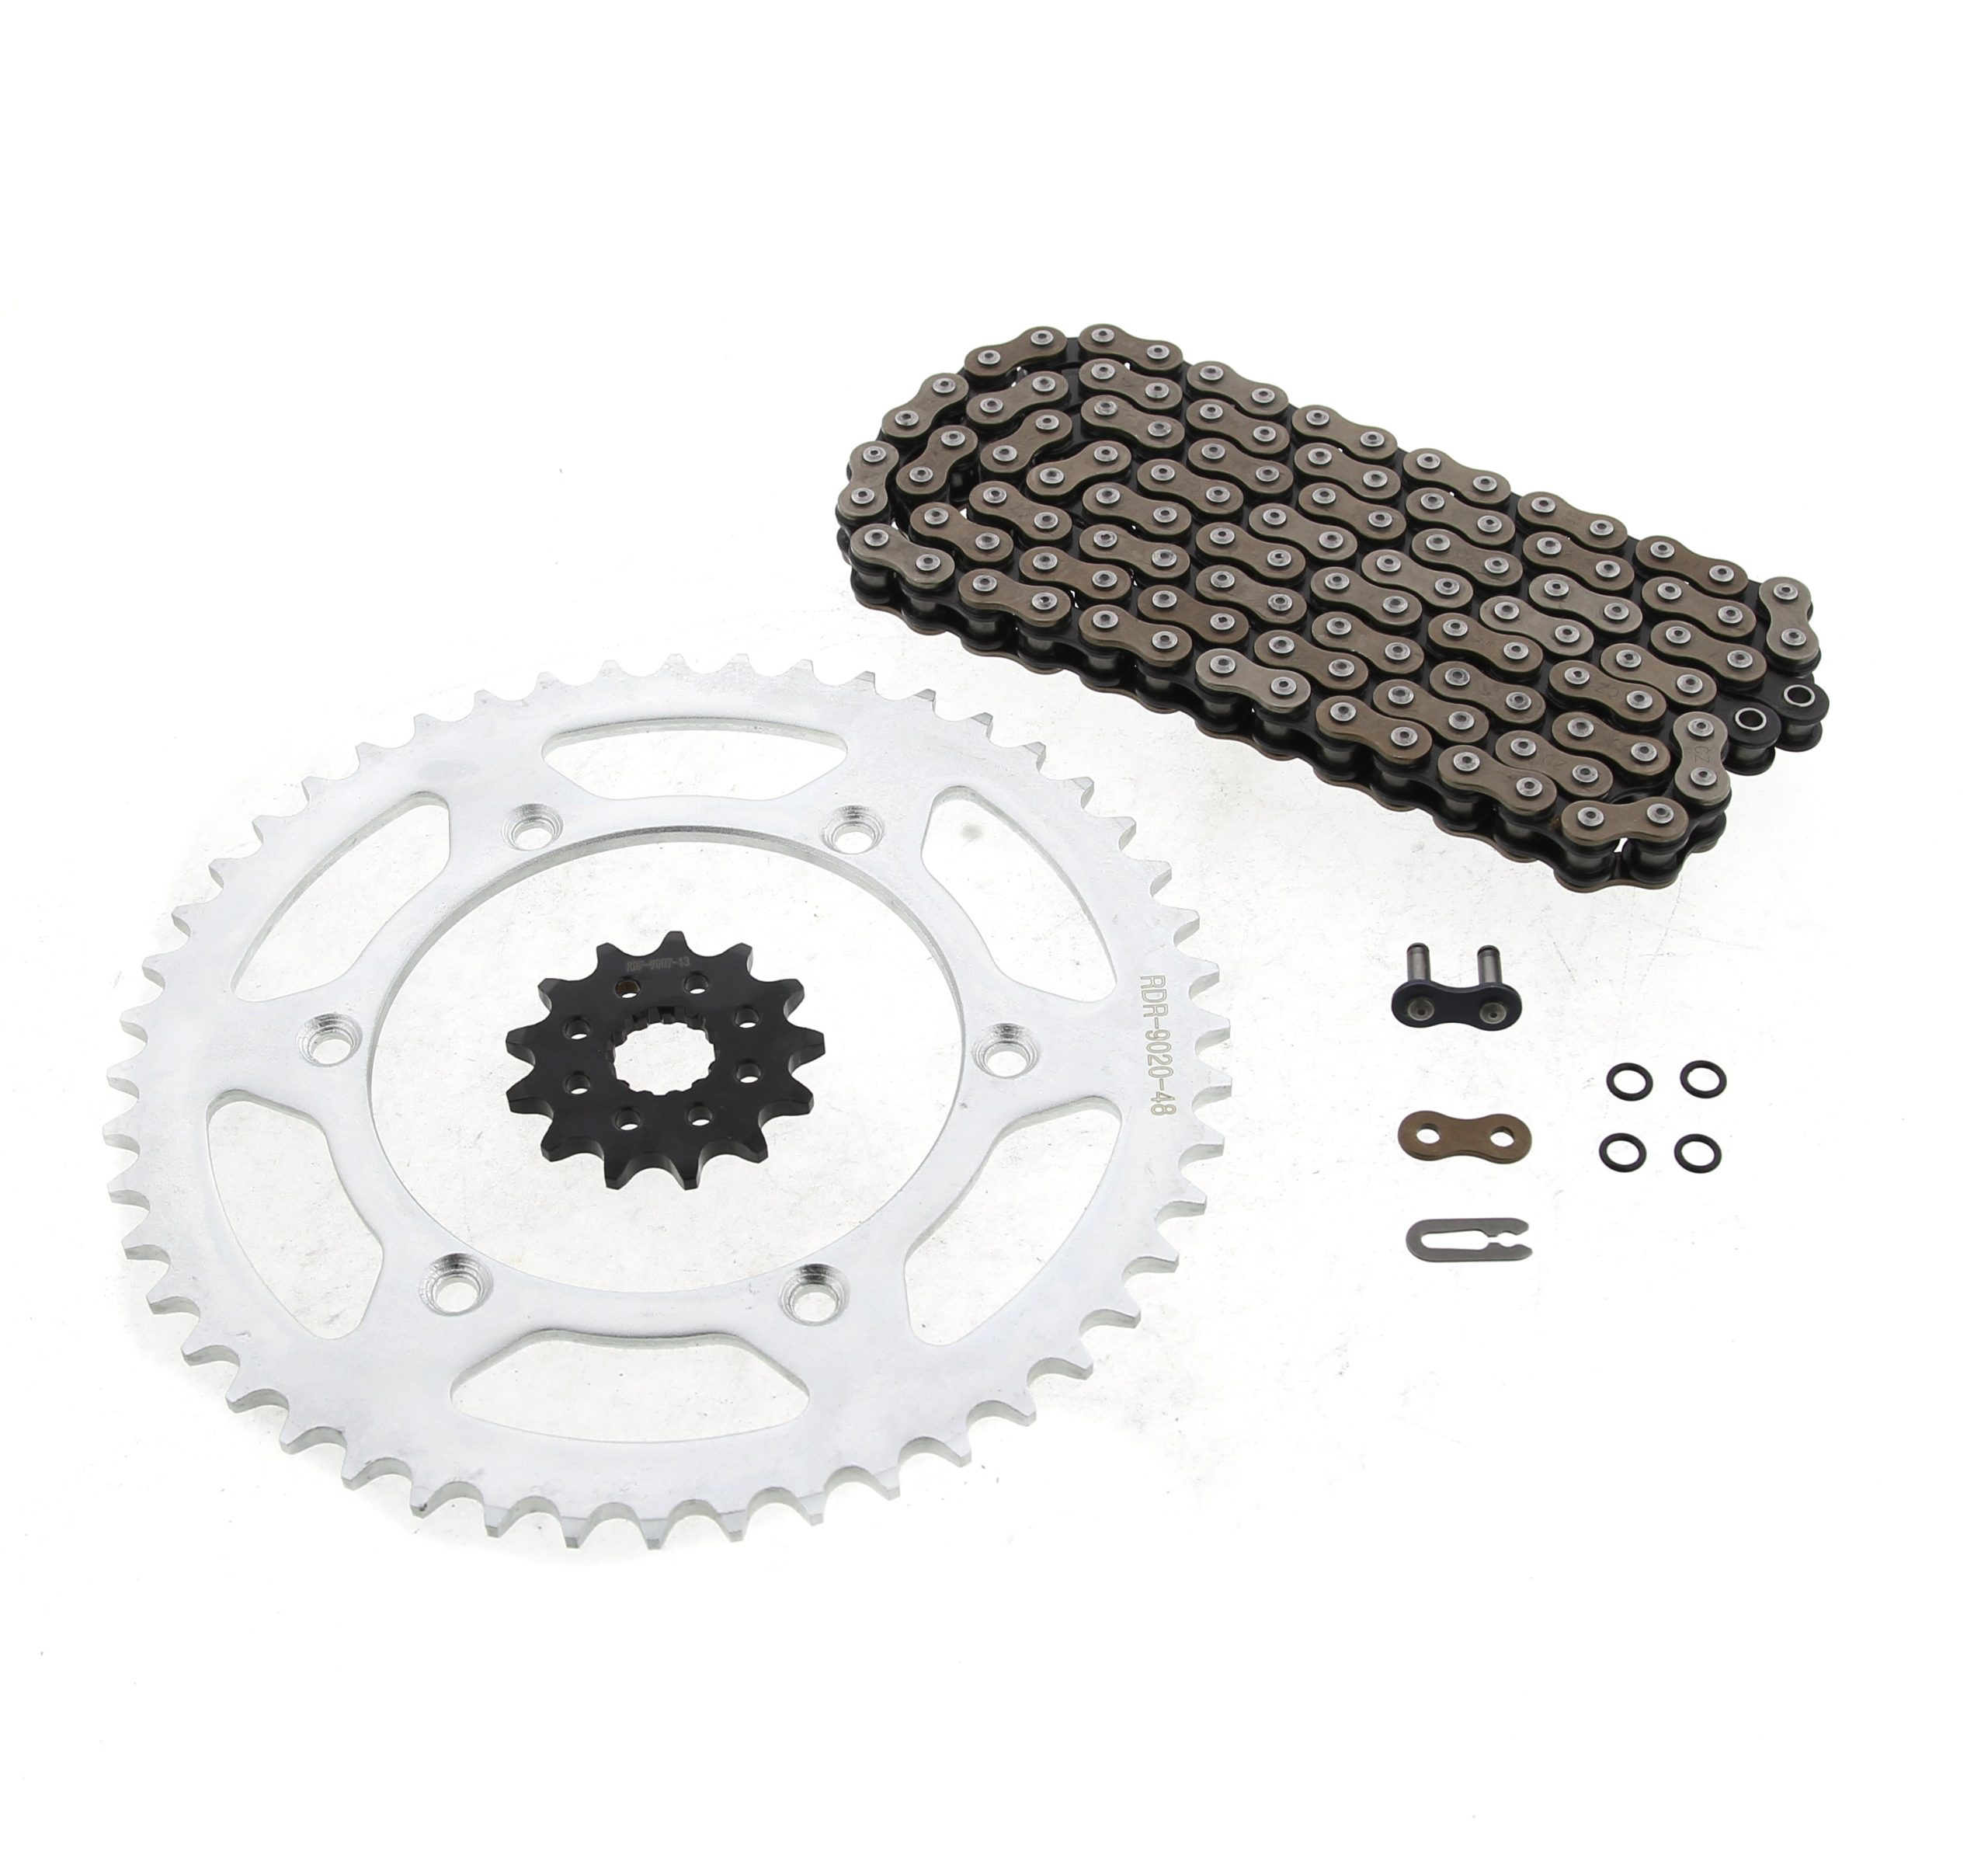 2003-2014 fits Yamaha WR450 F WR 450F 15 Tooth Front and 48 Tooth Rear Sprocket